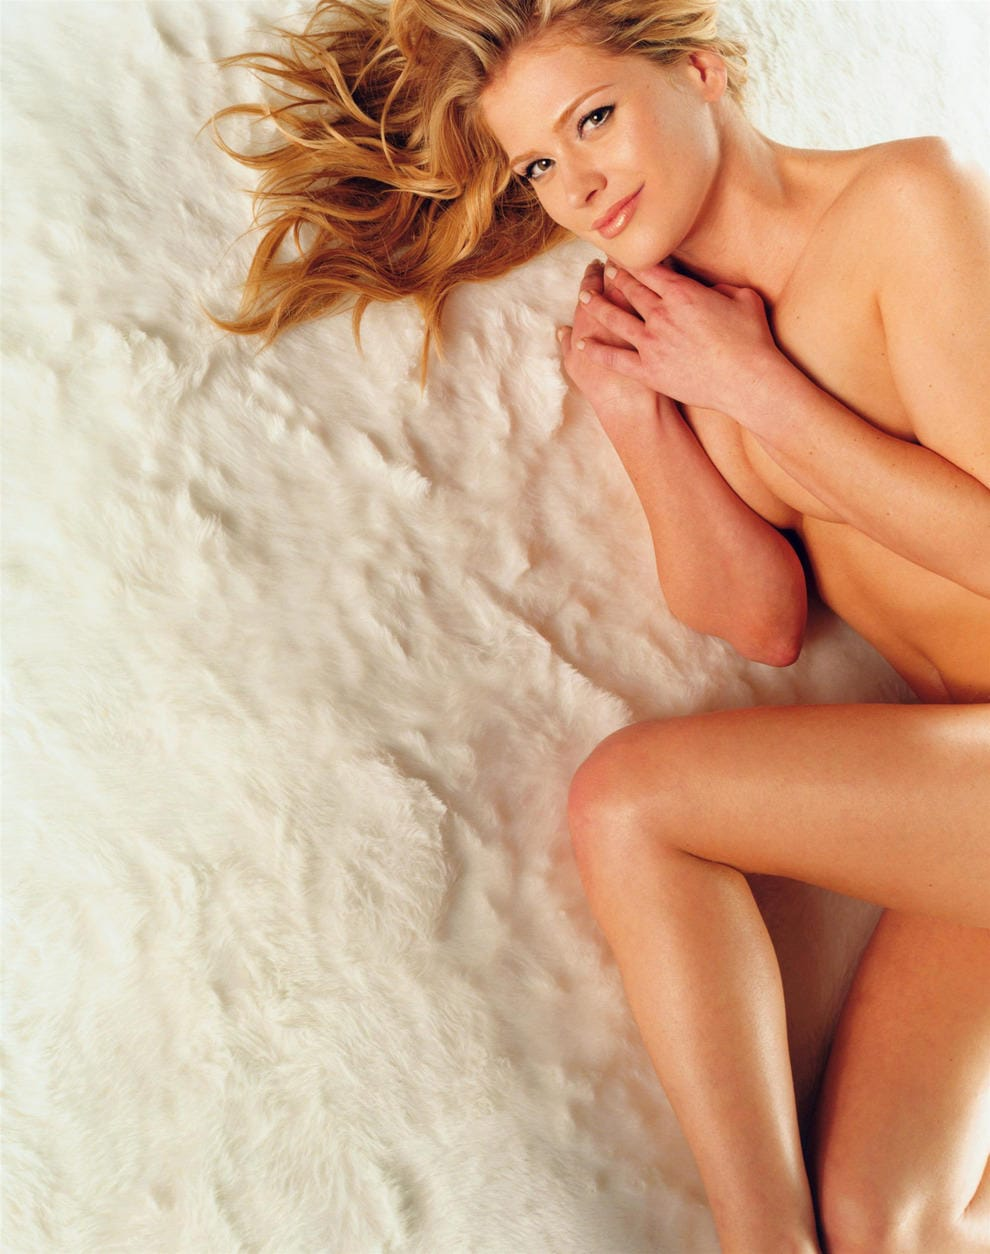 Guy nude pictures of kristy swanson